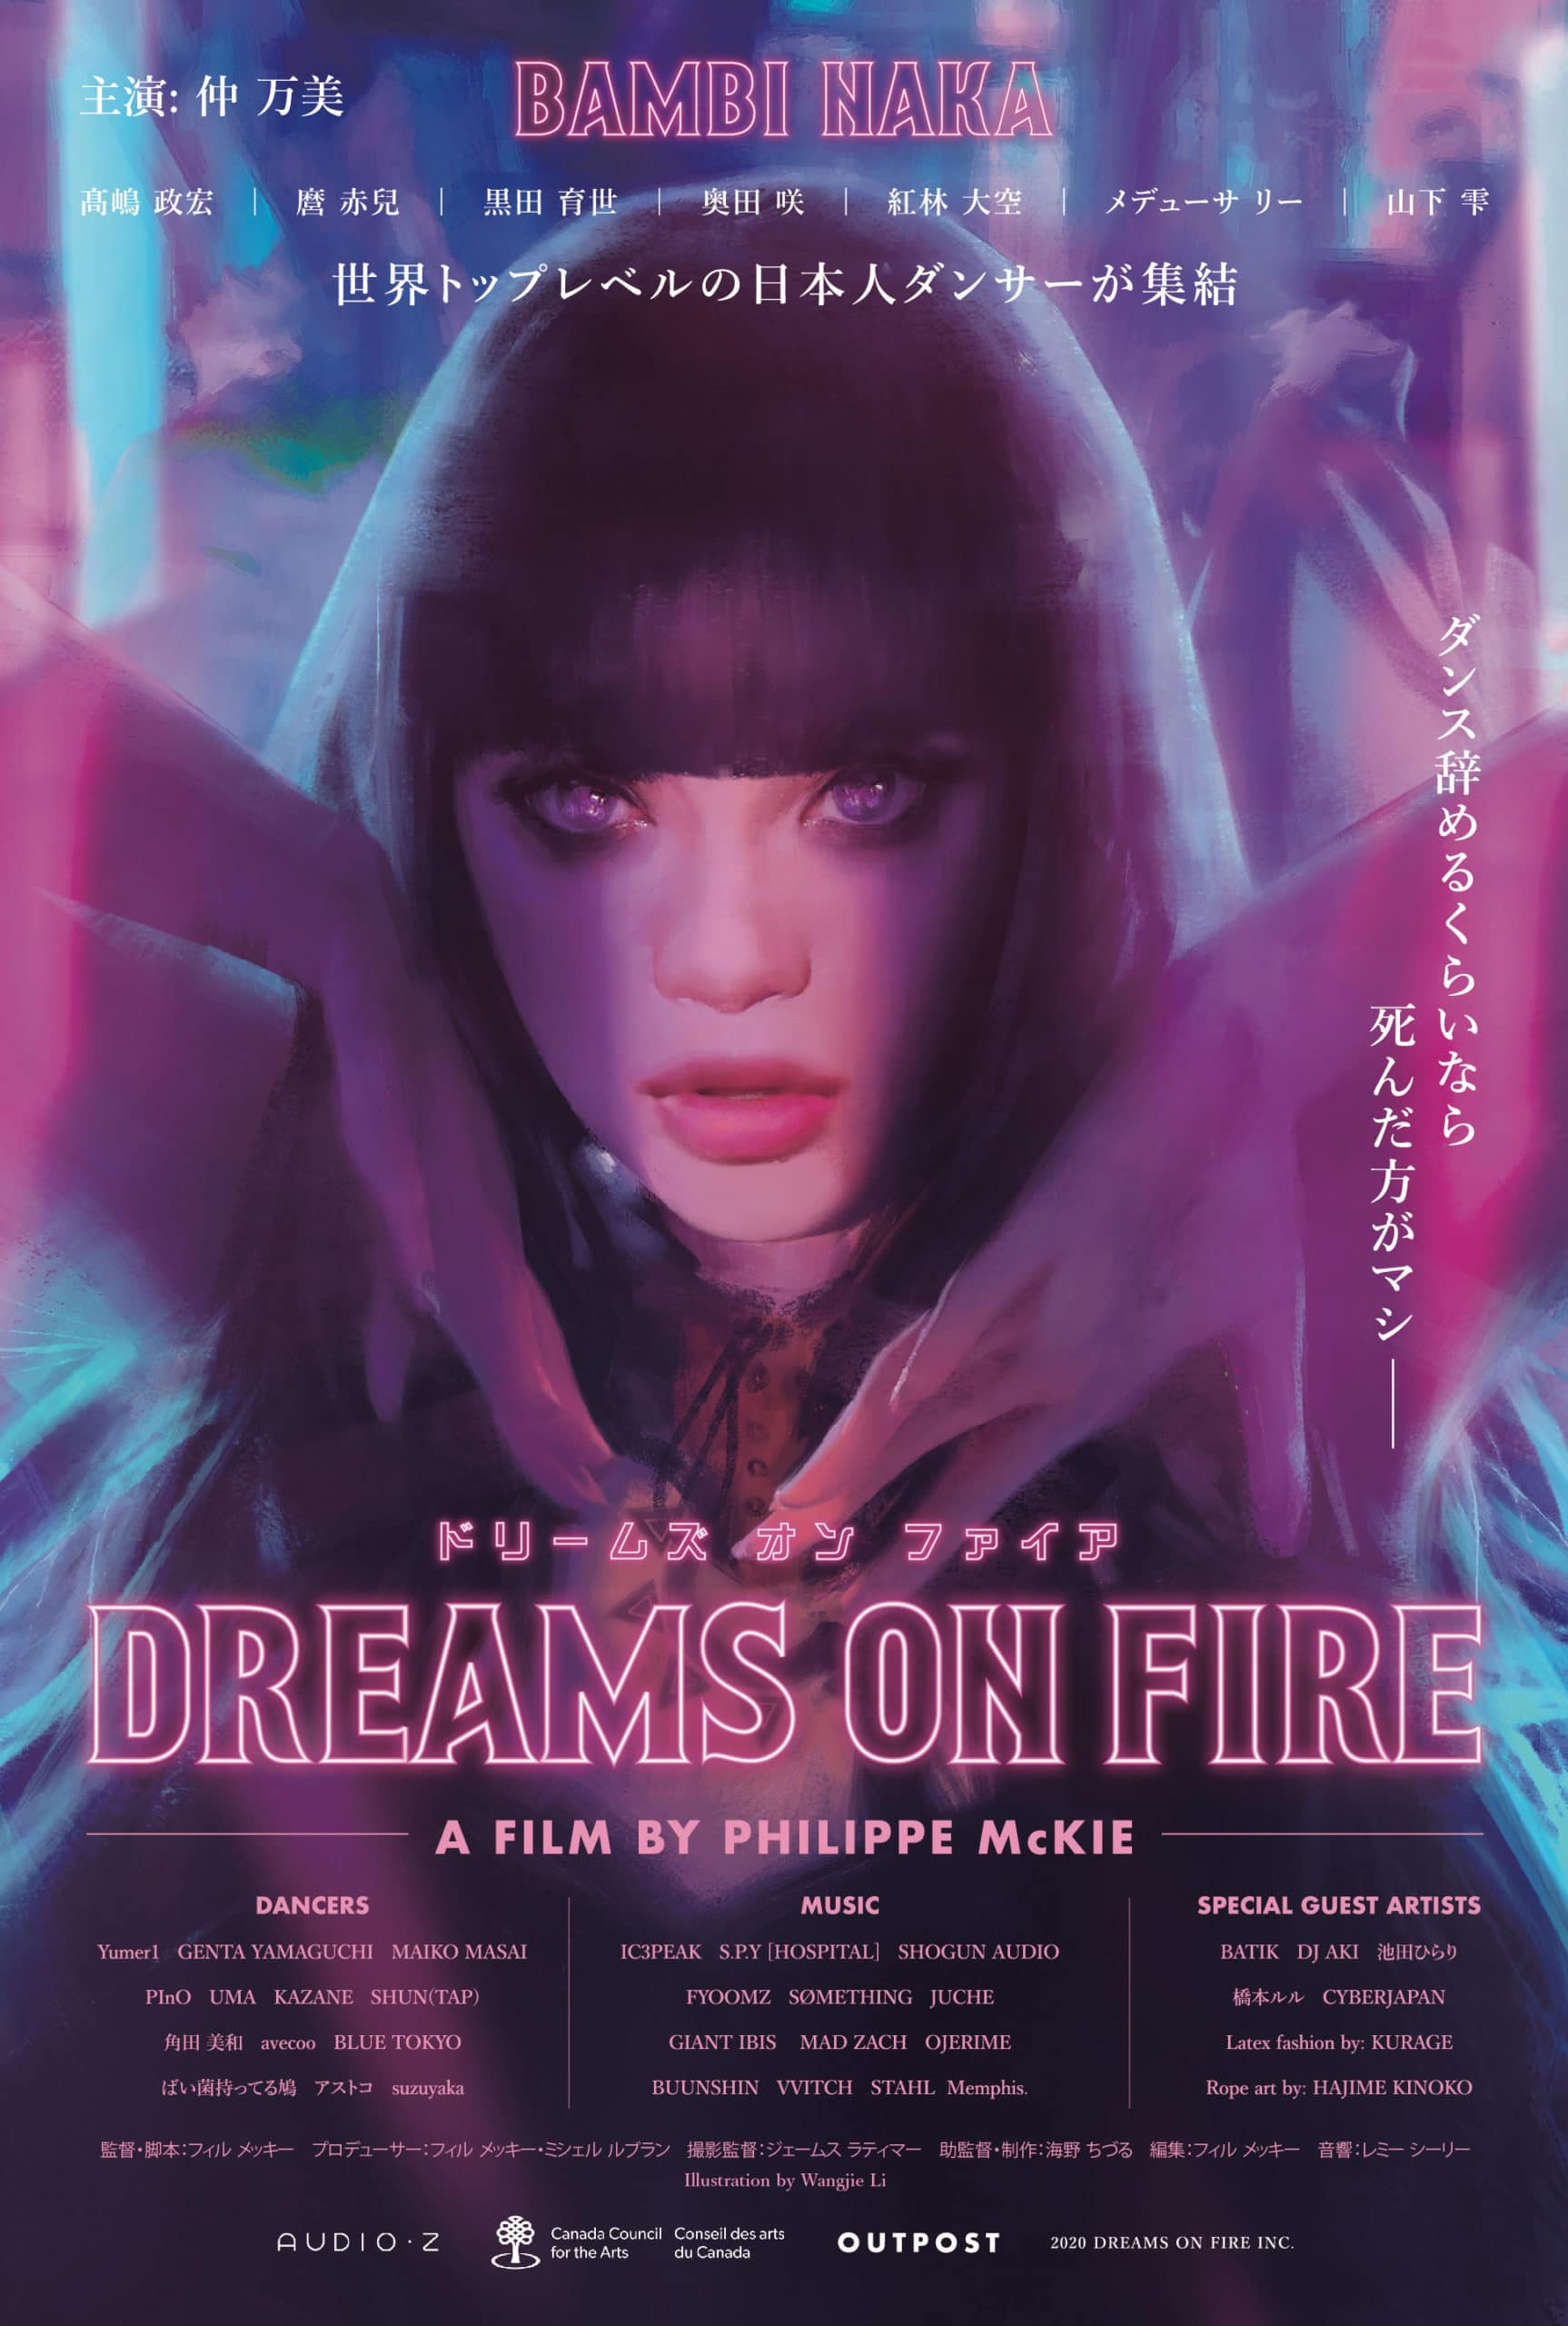 Dreams on Fire Movie Poster with Bambi Naka as Yume